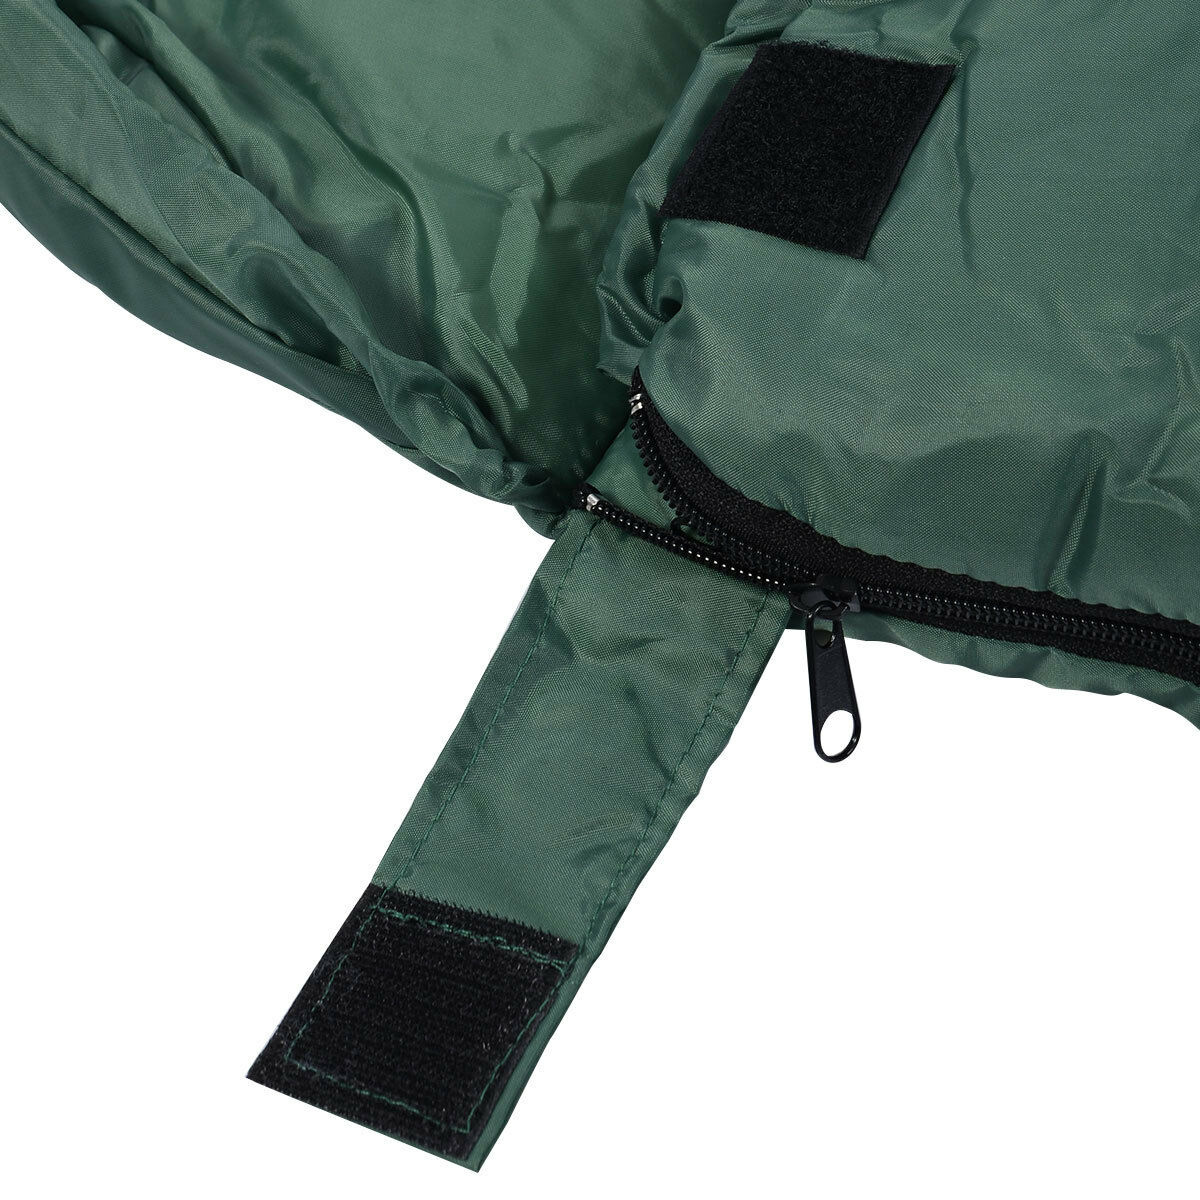 New-Mummy-Waterproof-Outdoor-Sleeping-Bag-Camping-Travel-Hiking-W-Carrying-Bag thumbnail 14